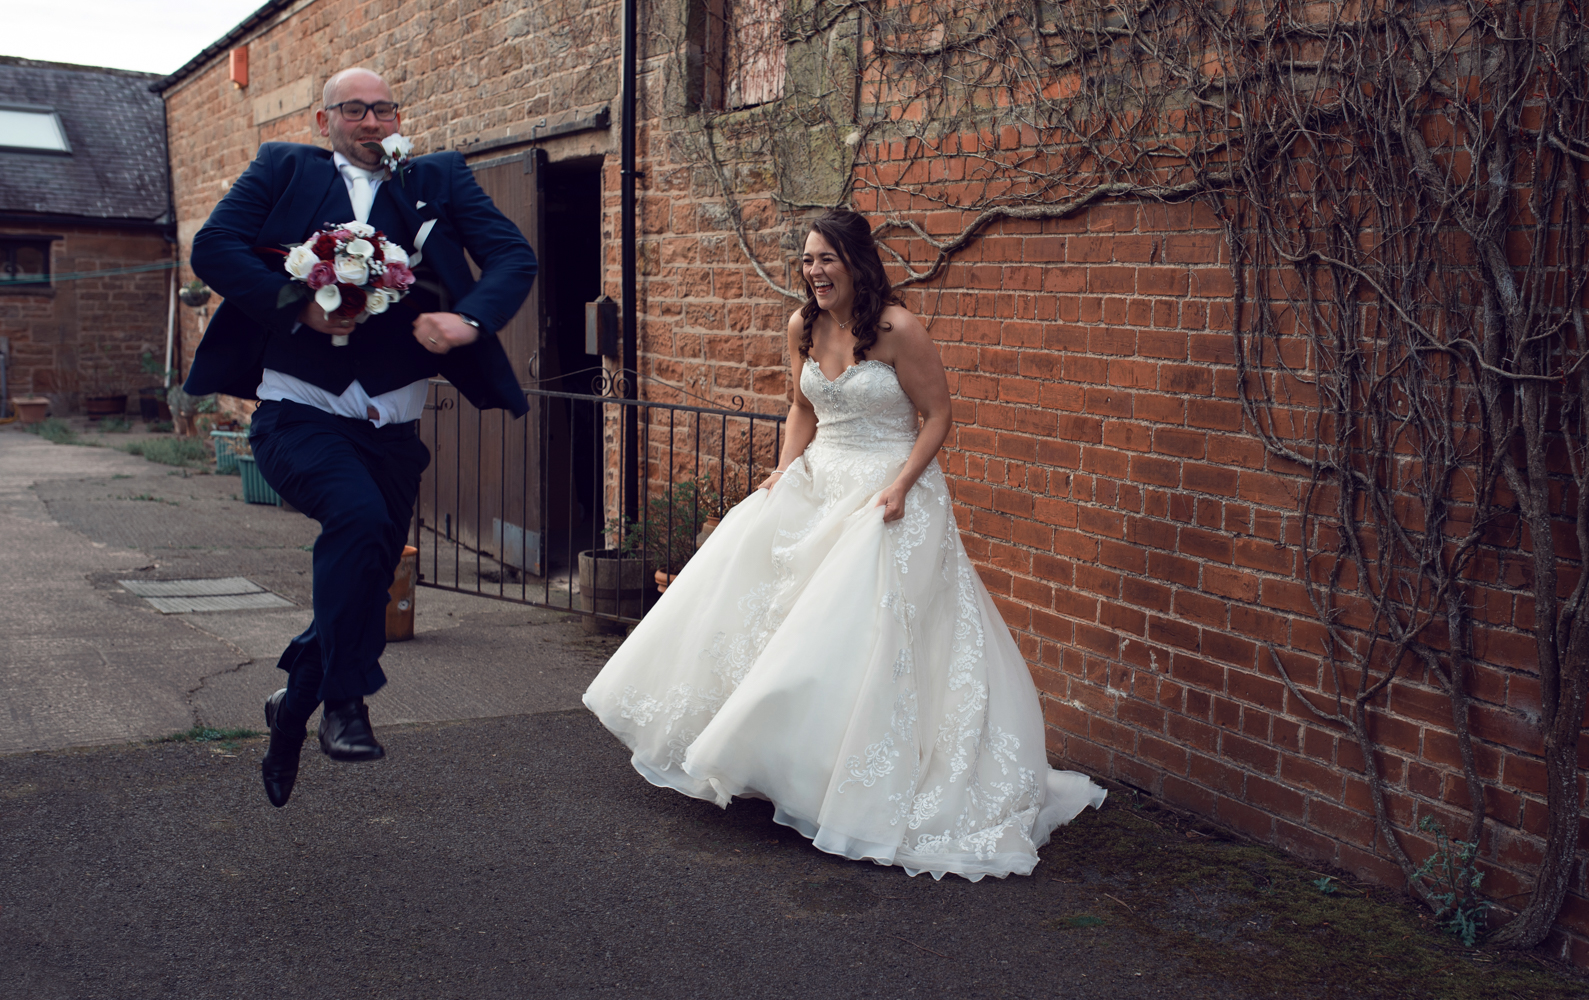 The bride laughing as the groom runs and jumps in front of her